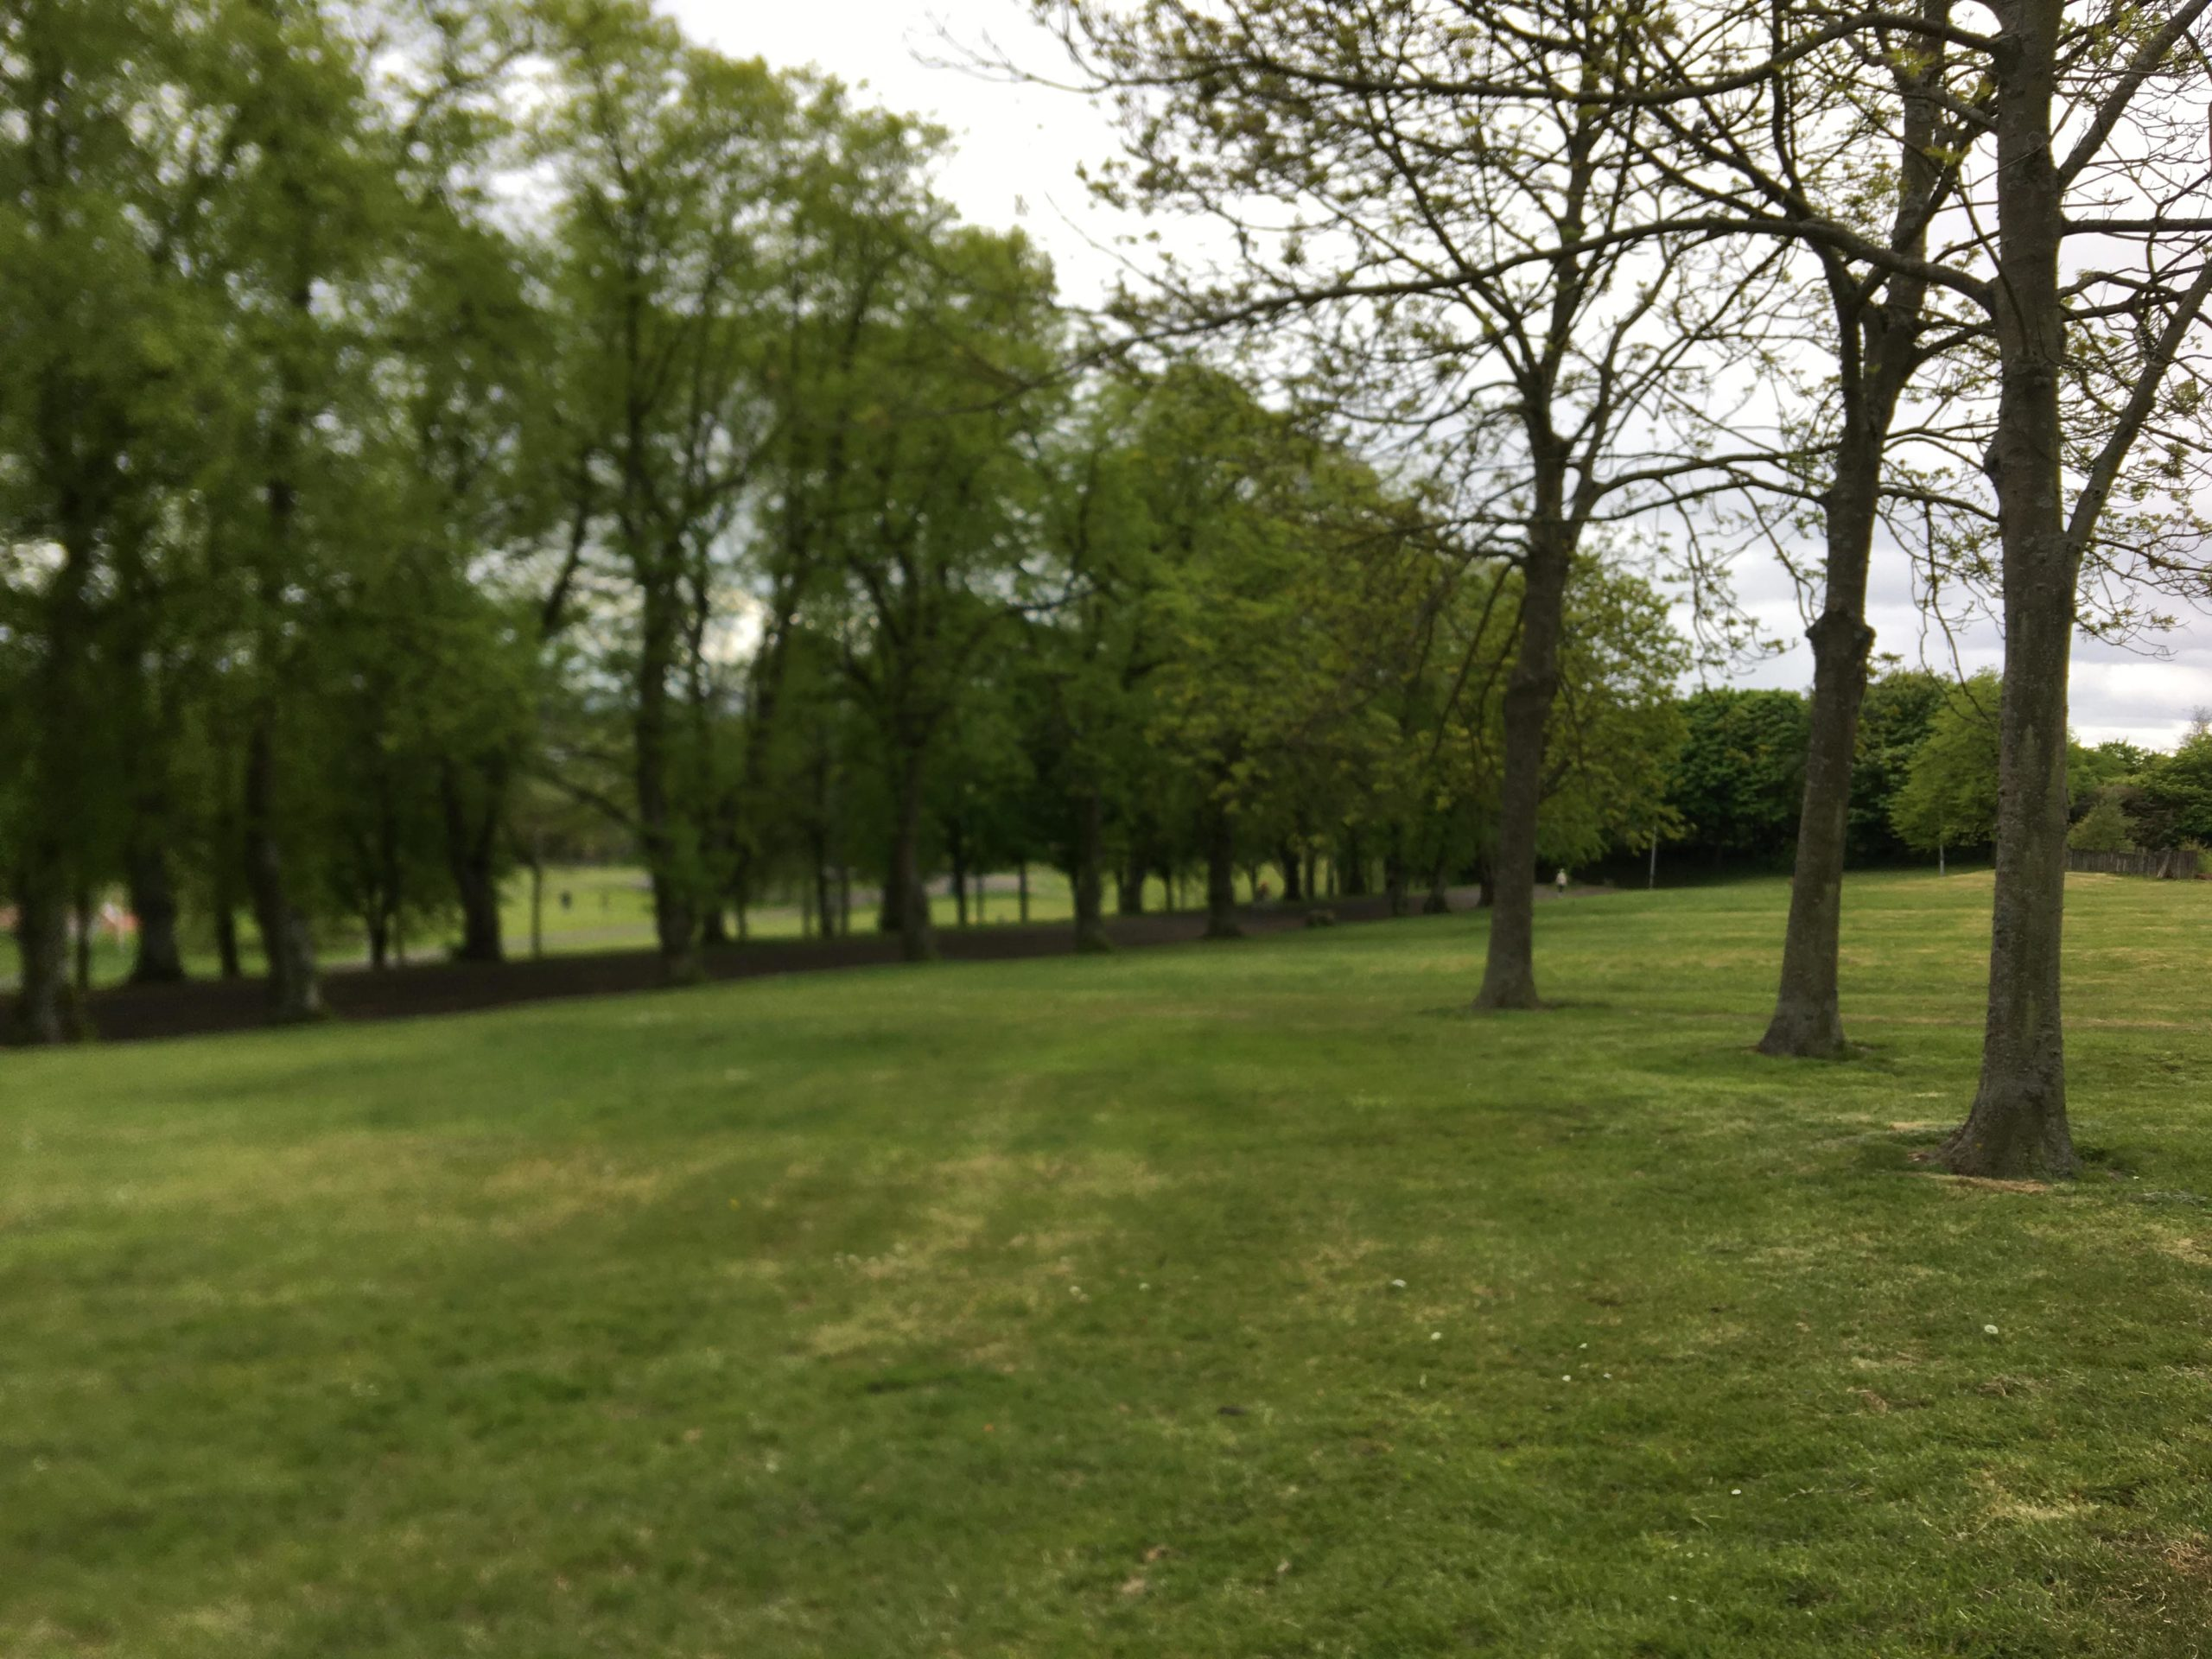 Grass on the ground, three bare trees on the right and on the left a line of gree leaved trees into the distance.